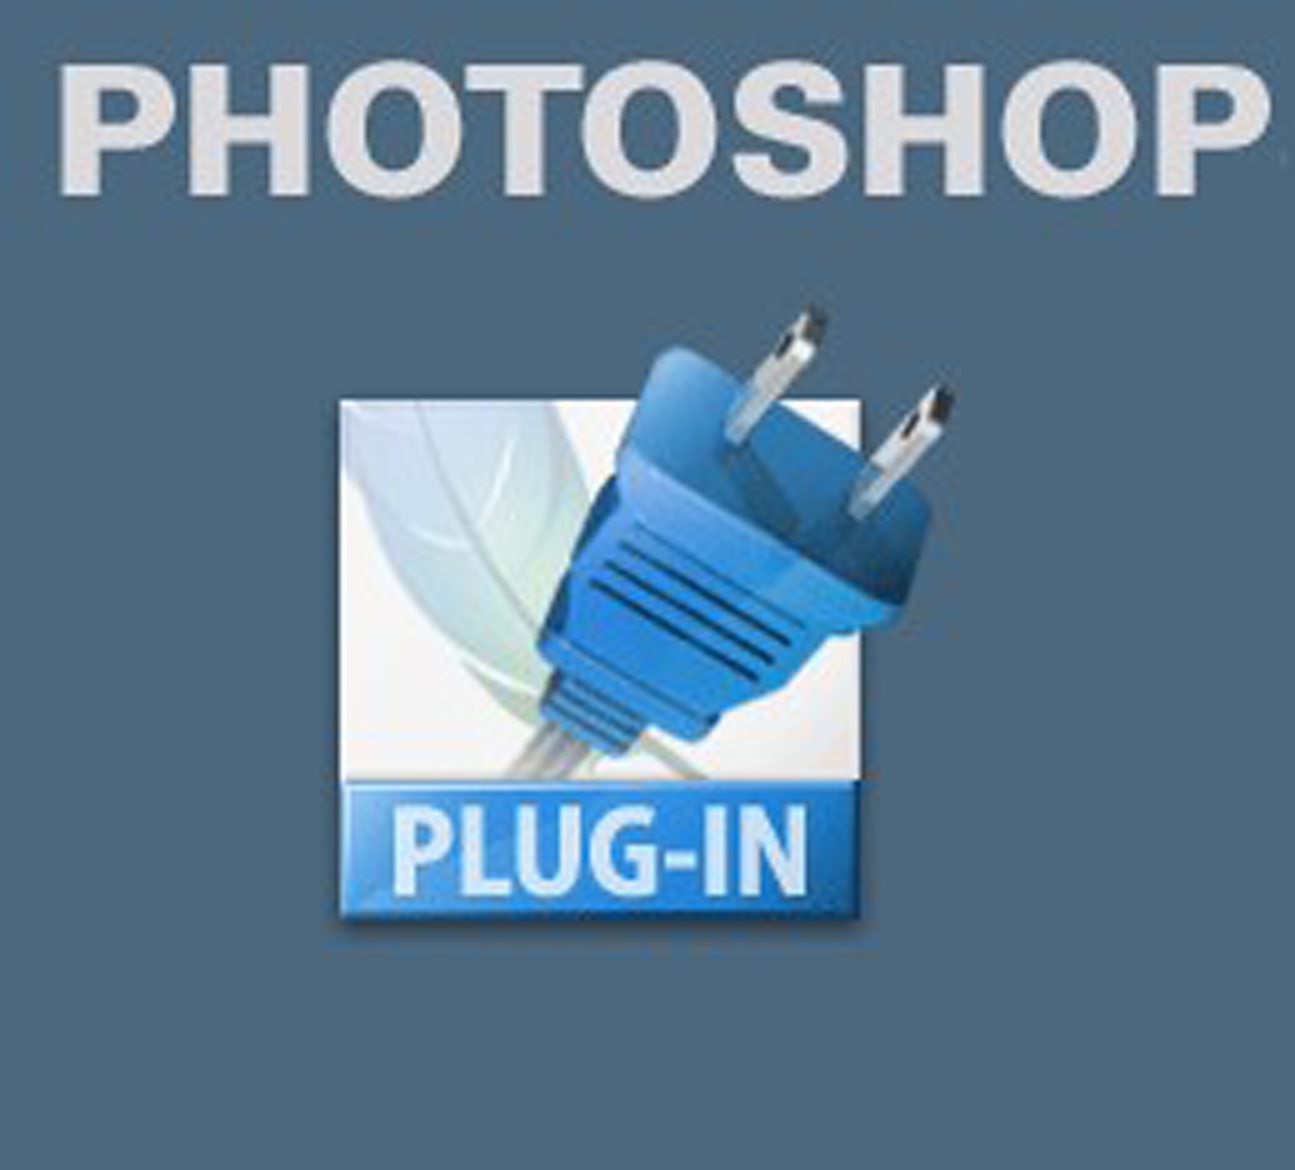 designanthology: Free Photoshop-compatible Plugins - 468 x 505 png 39kB